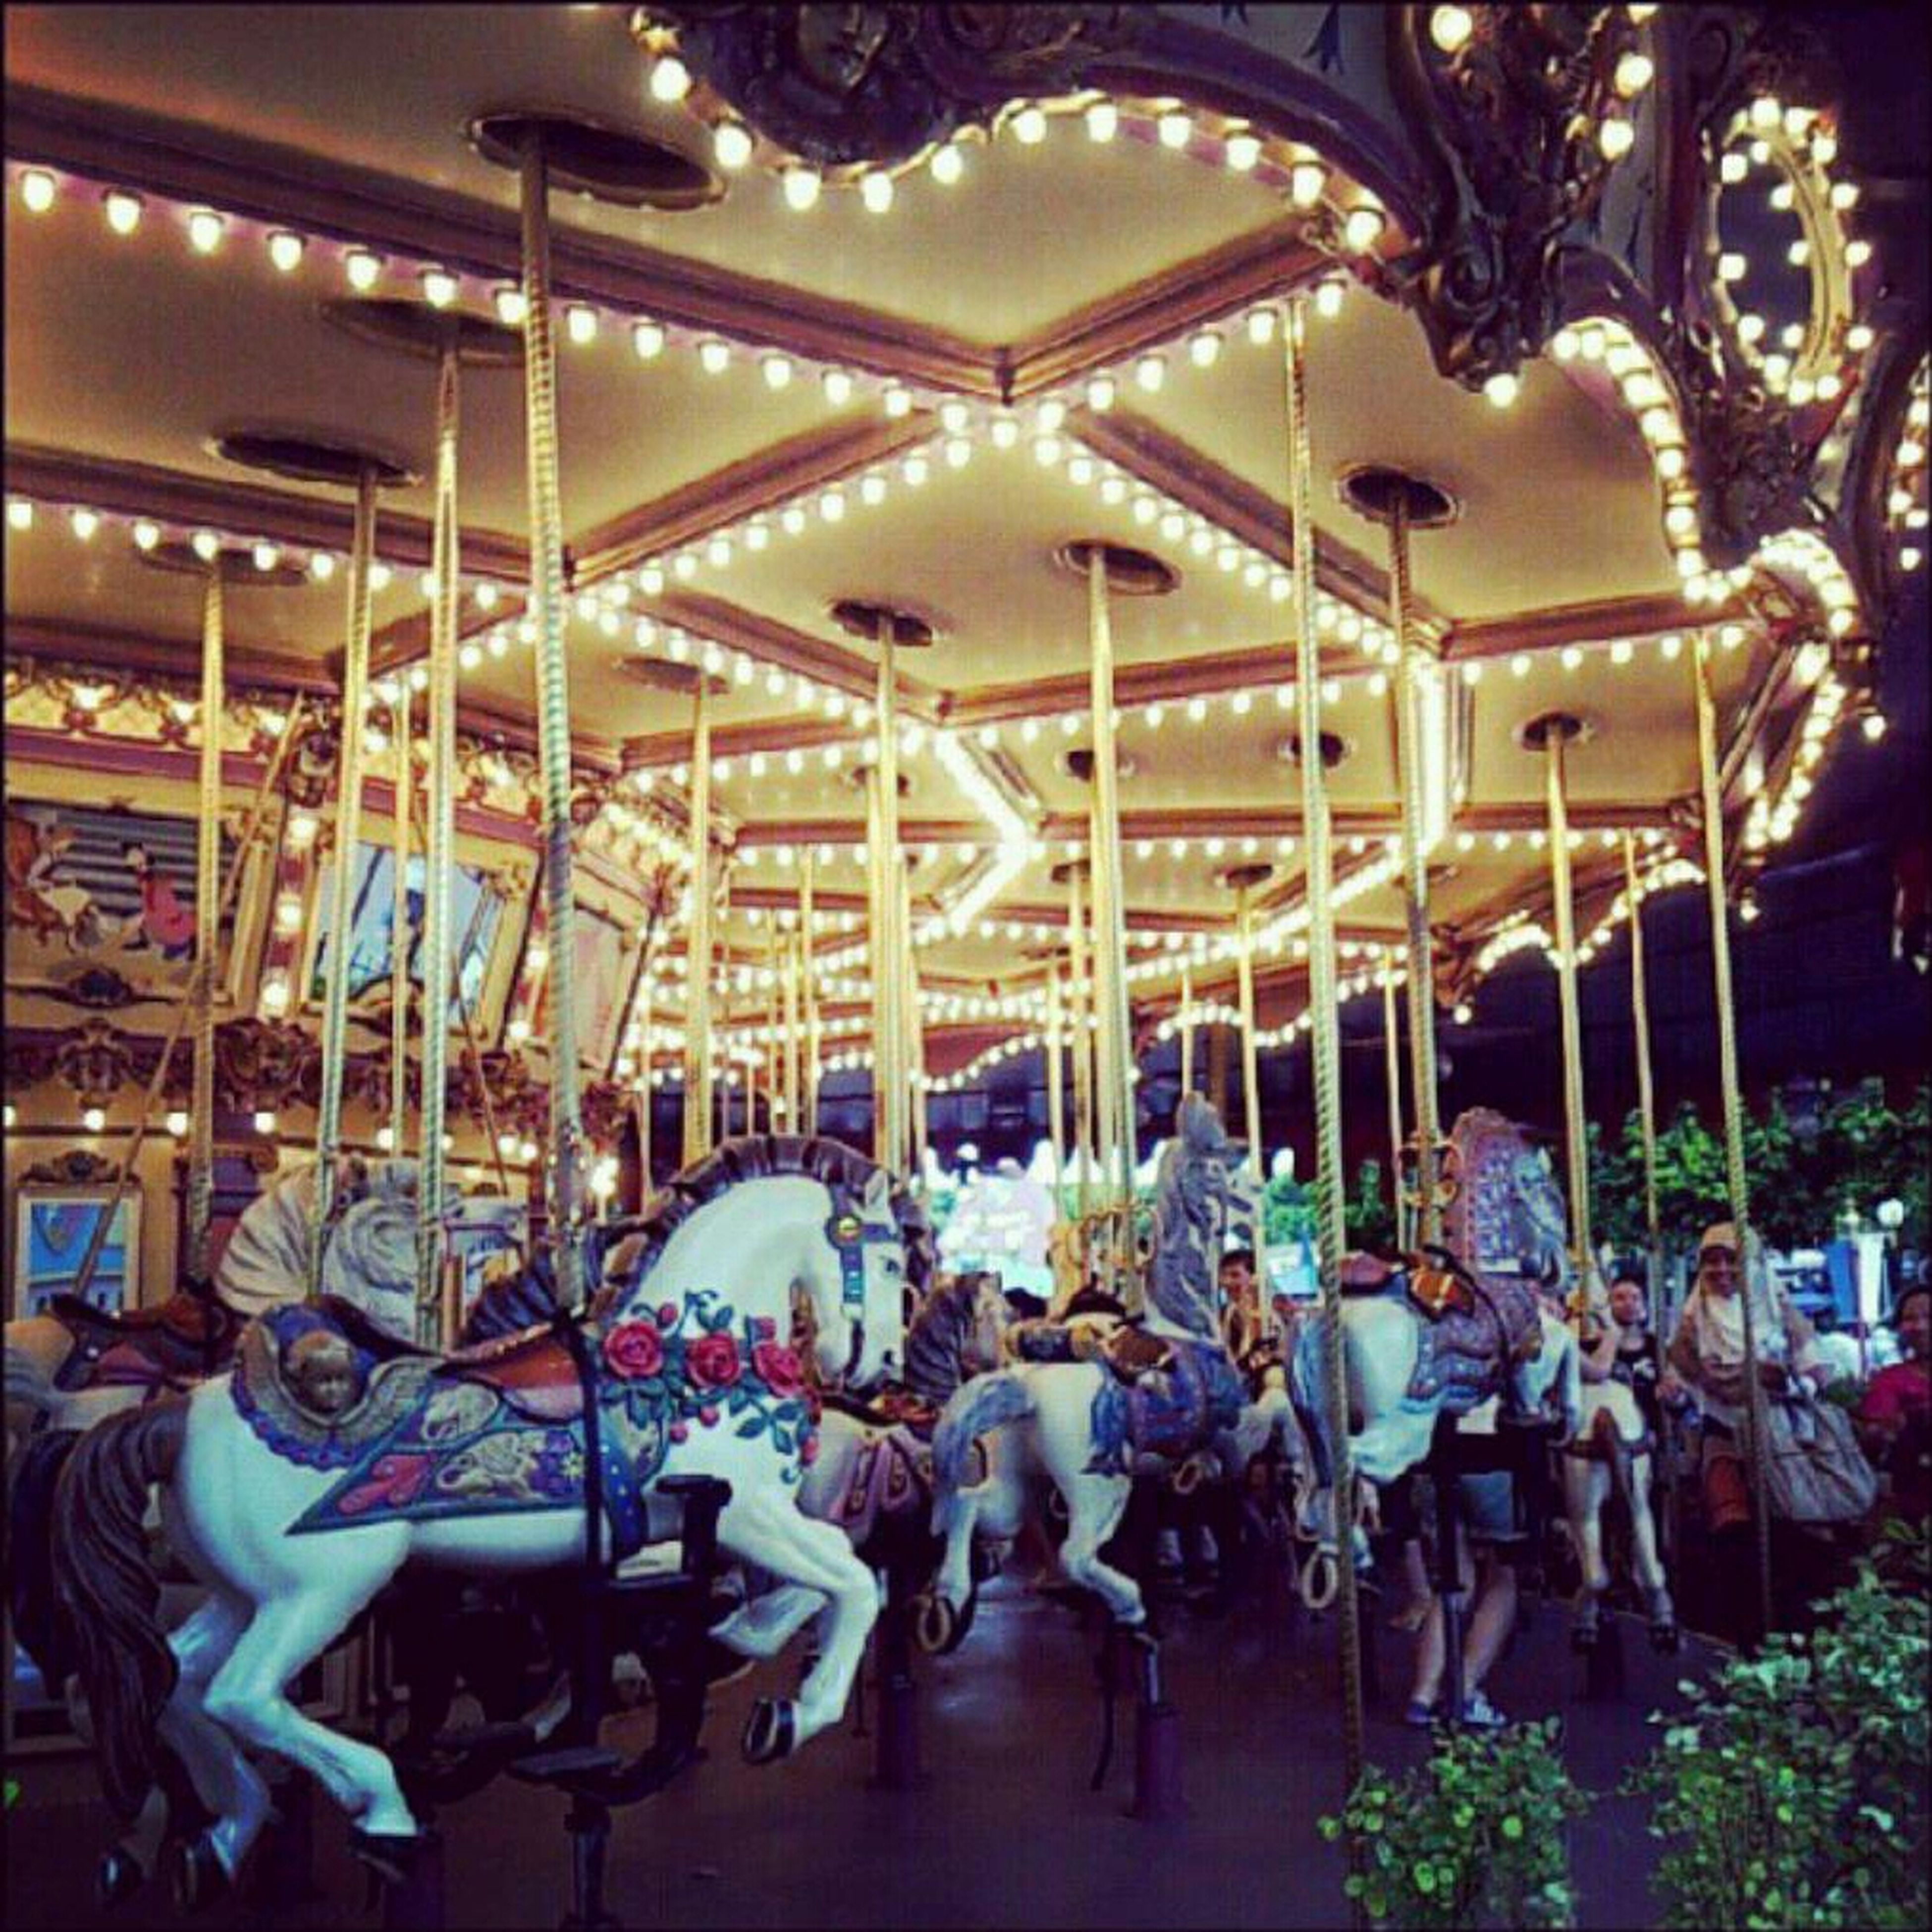 illuminated, night, chair, arts culture and entertainment, built structure, animal representation, men, amusement park, horse, carousel, lighting equipment, decoration, incidental people, tree, architecture, large group of people, leisure activity, outdoors, person